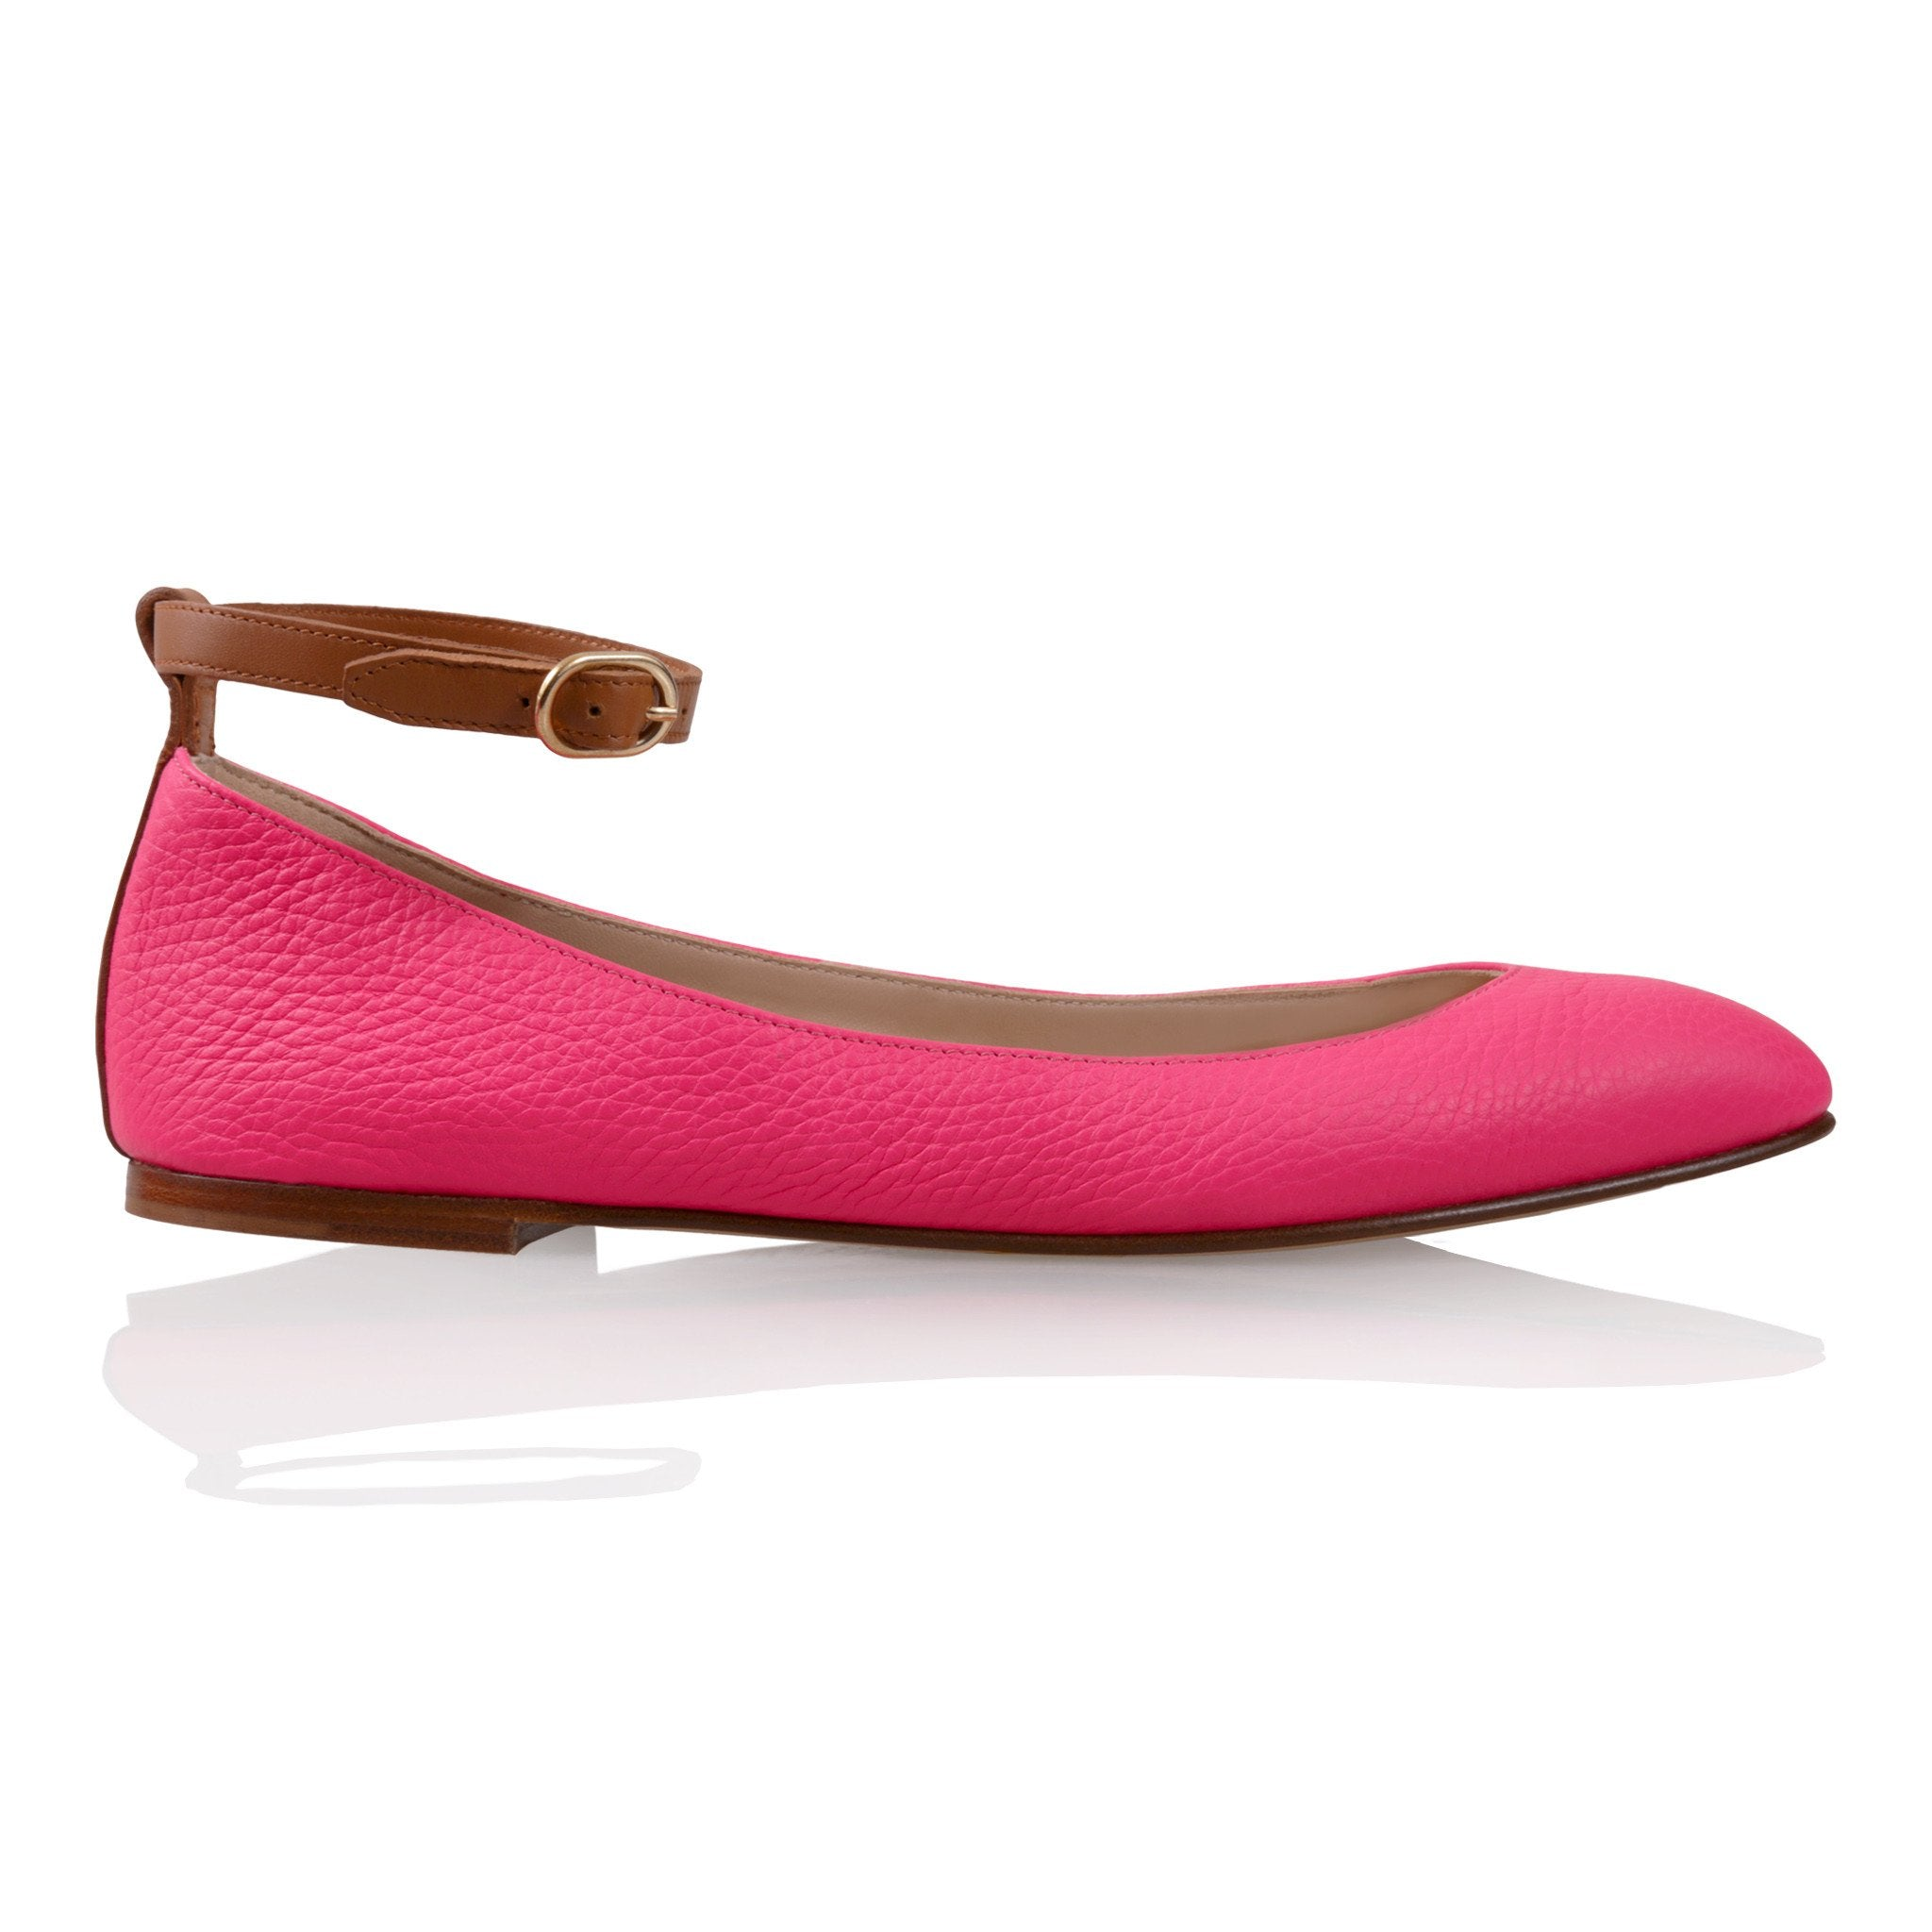 TORINO - Calf Fluoro Pink + Cuoio, VIAJIYU - Women's Hand Made Sustainable Luxury Shoes. Made in Italy. Made to Order.